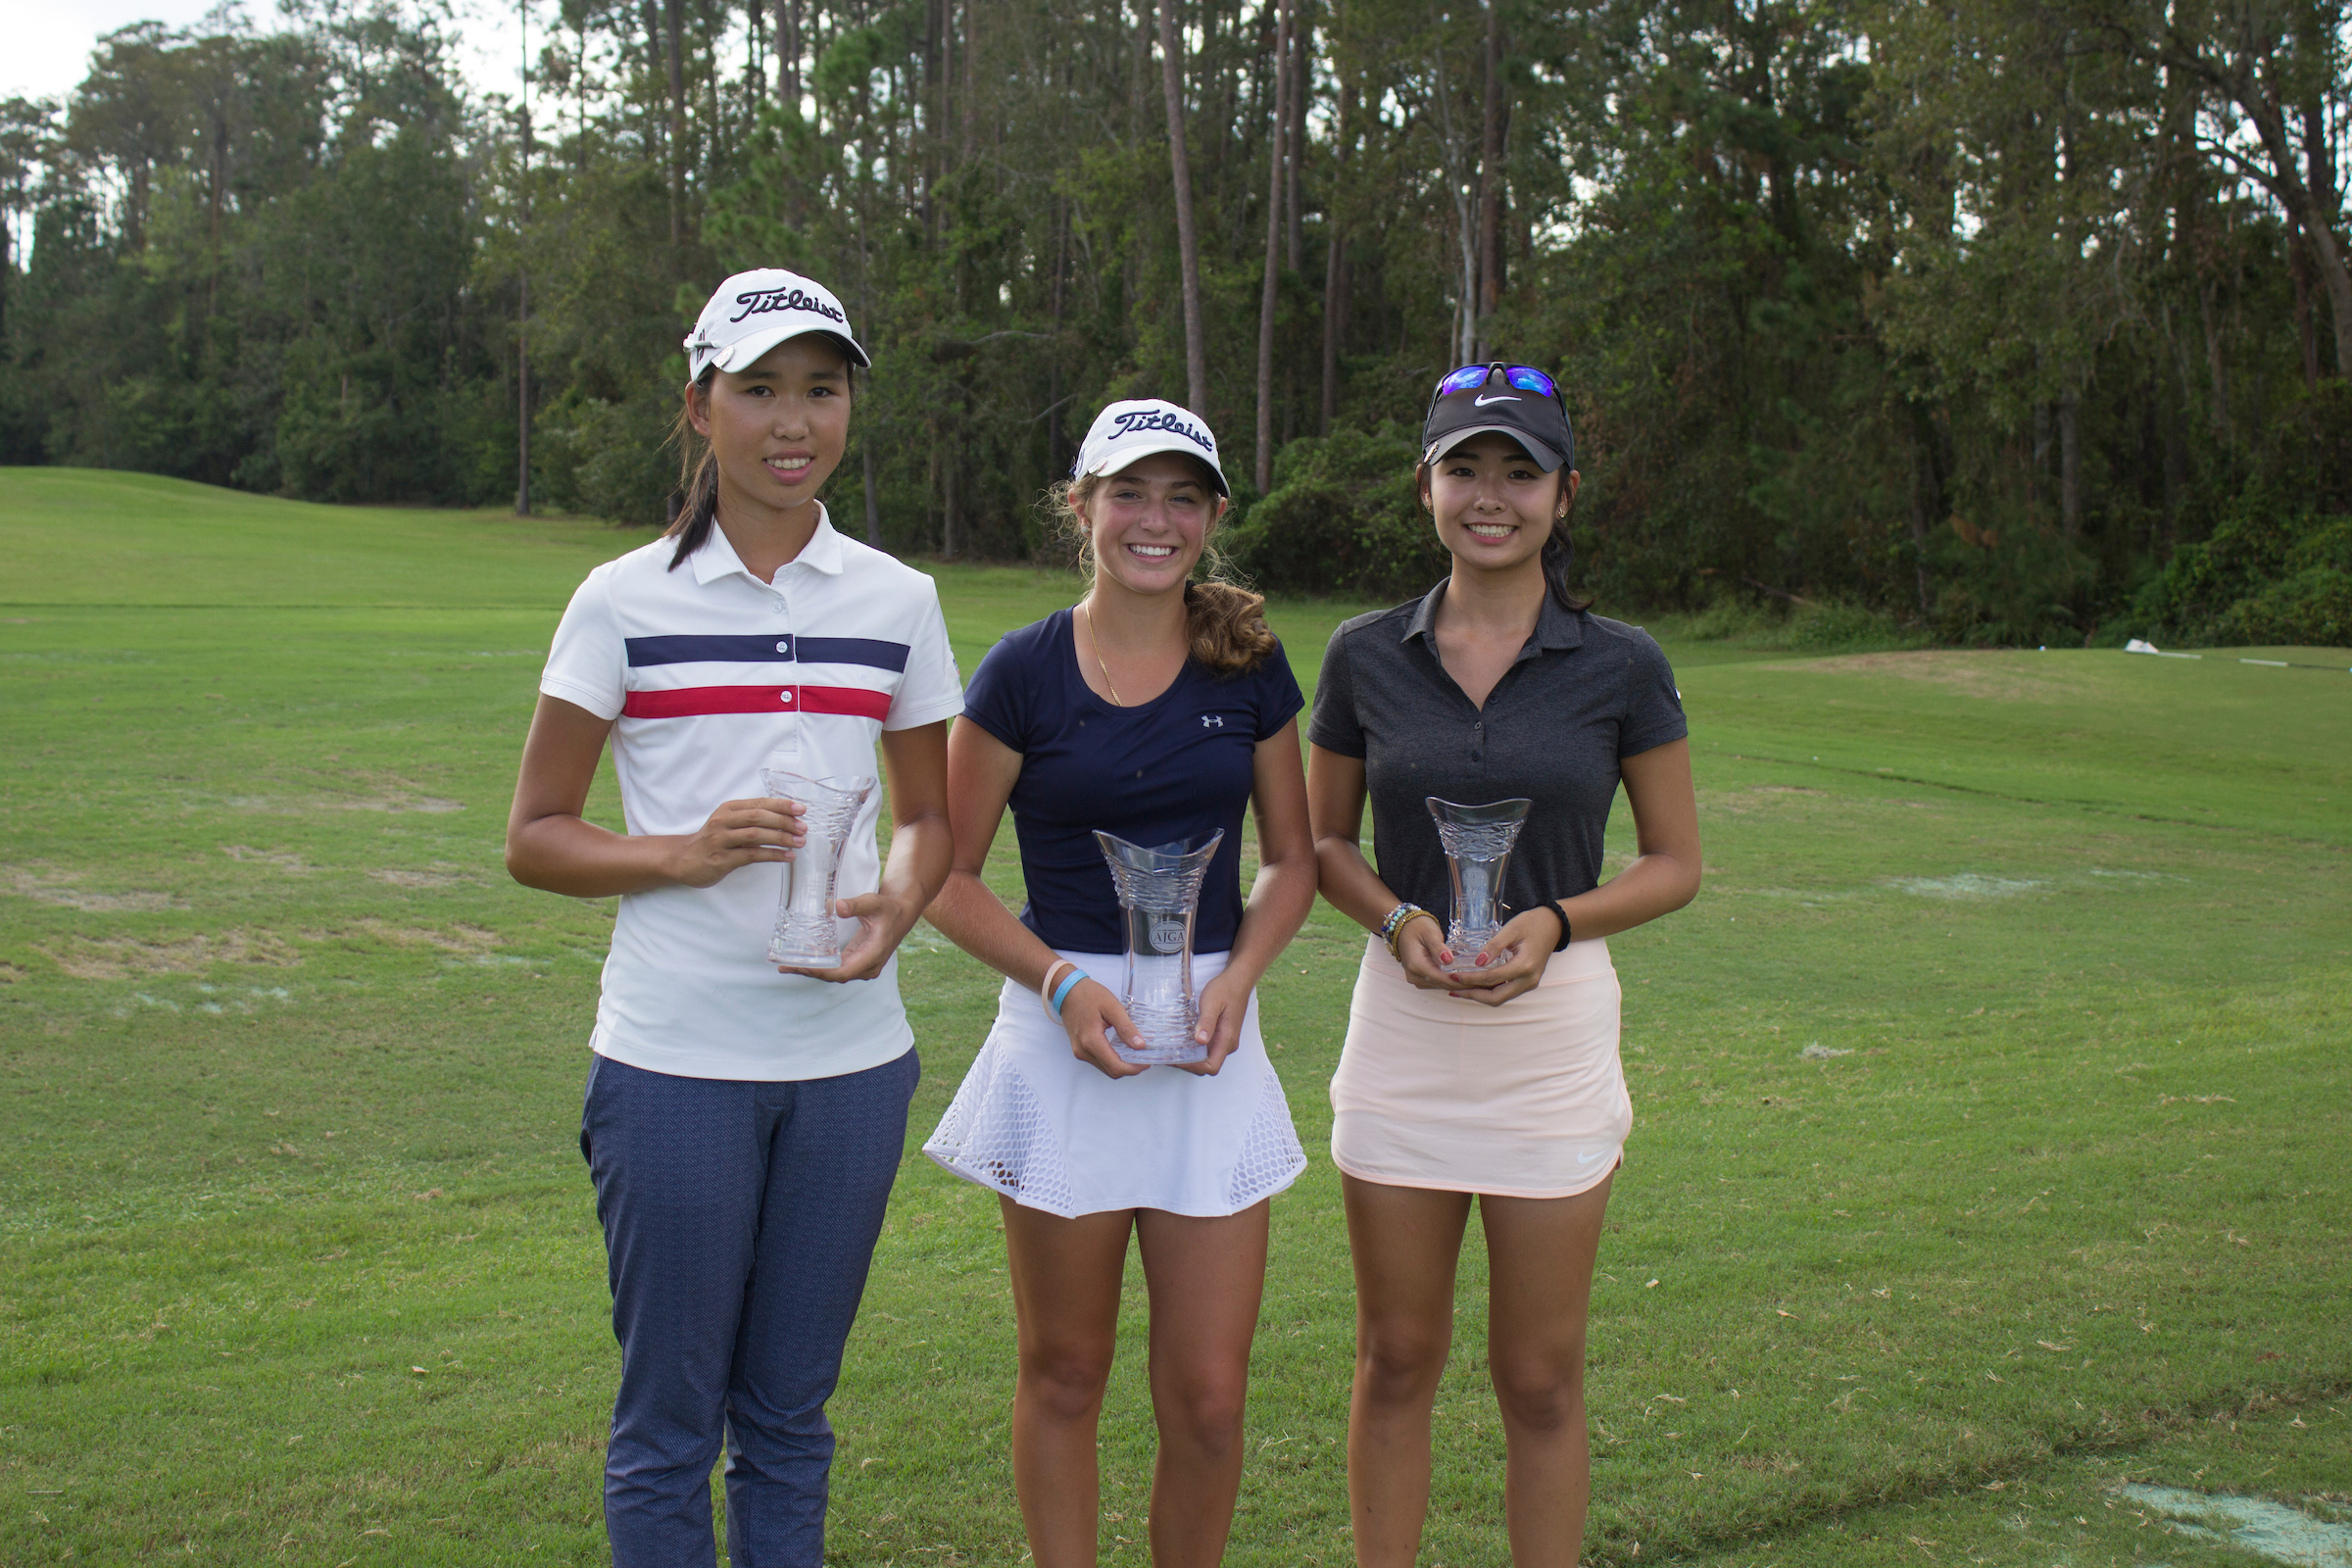 All Girls no banner, Chen, Yu, Kuehn - 2017 - Billy Horschel Junior_1.jpg